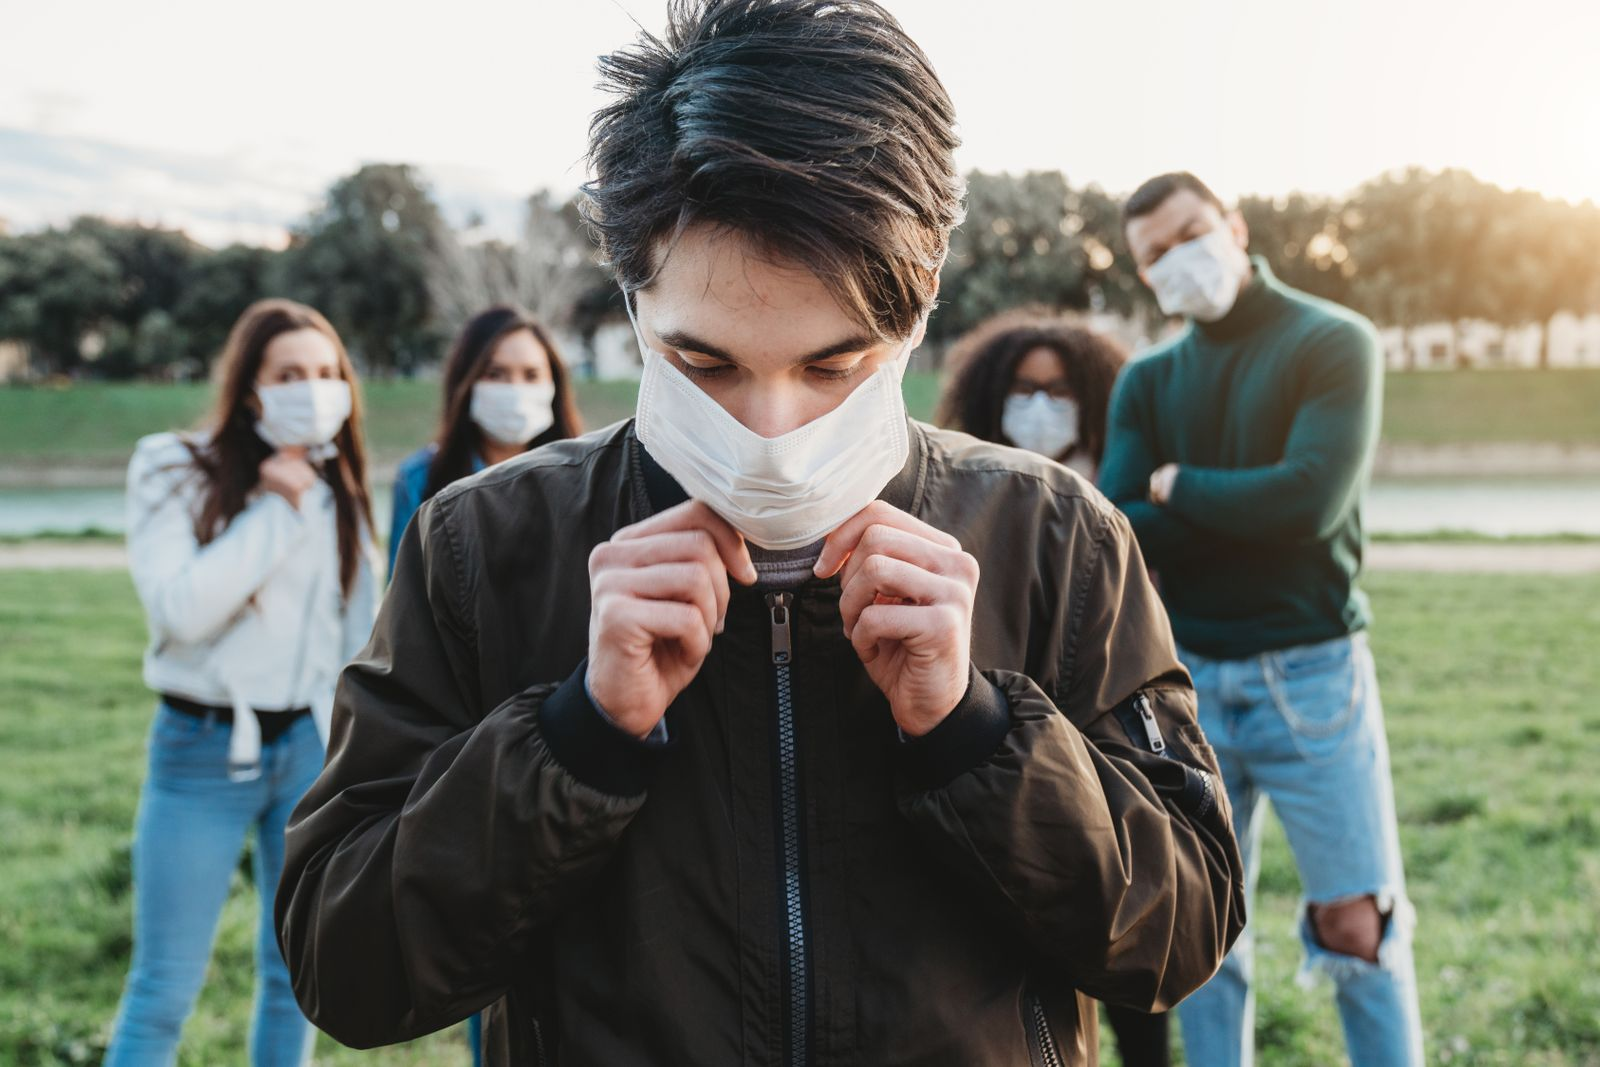 Young adult man wearing a pollution mask to protect himself from viruses. His friends are in the background.